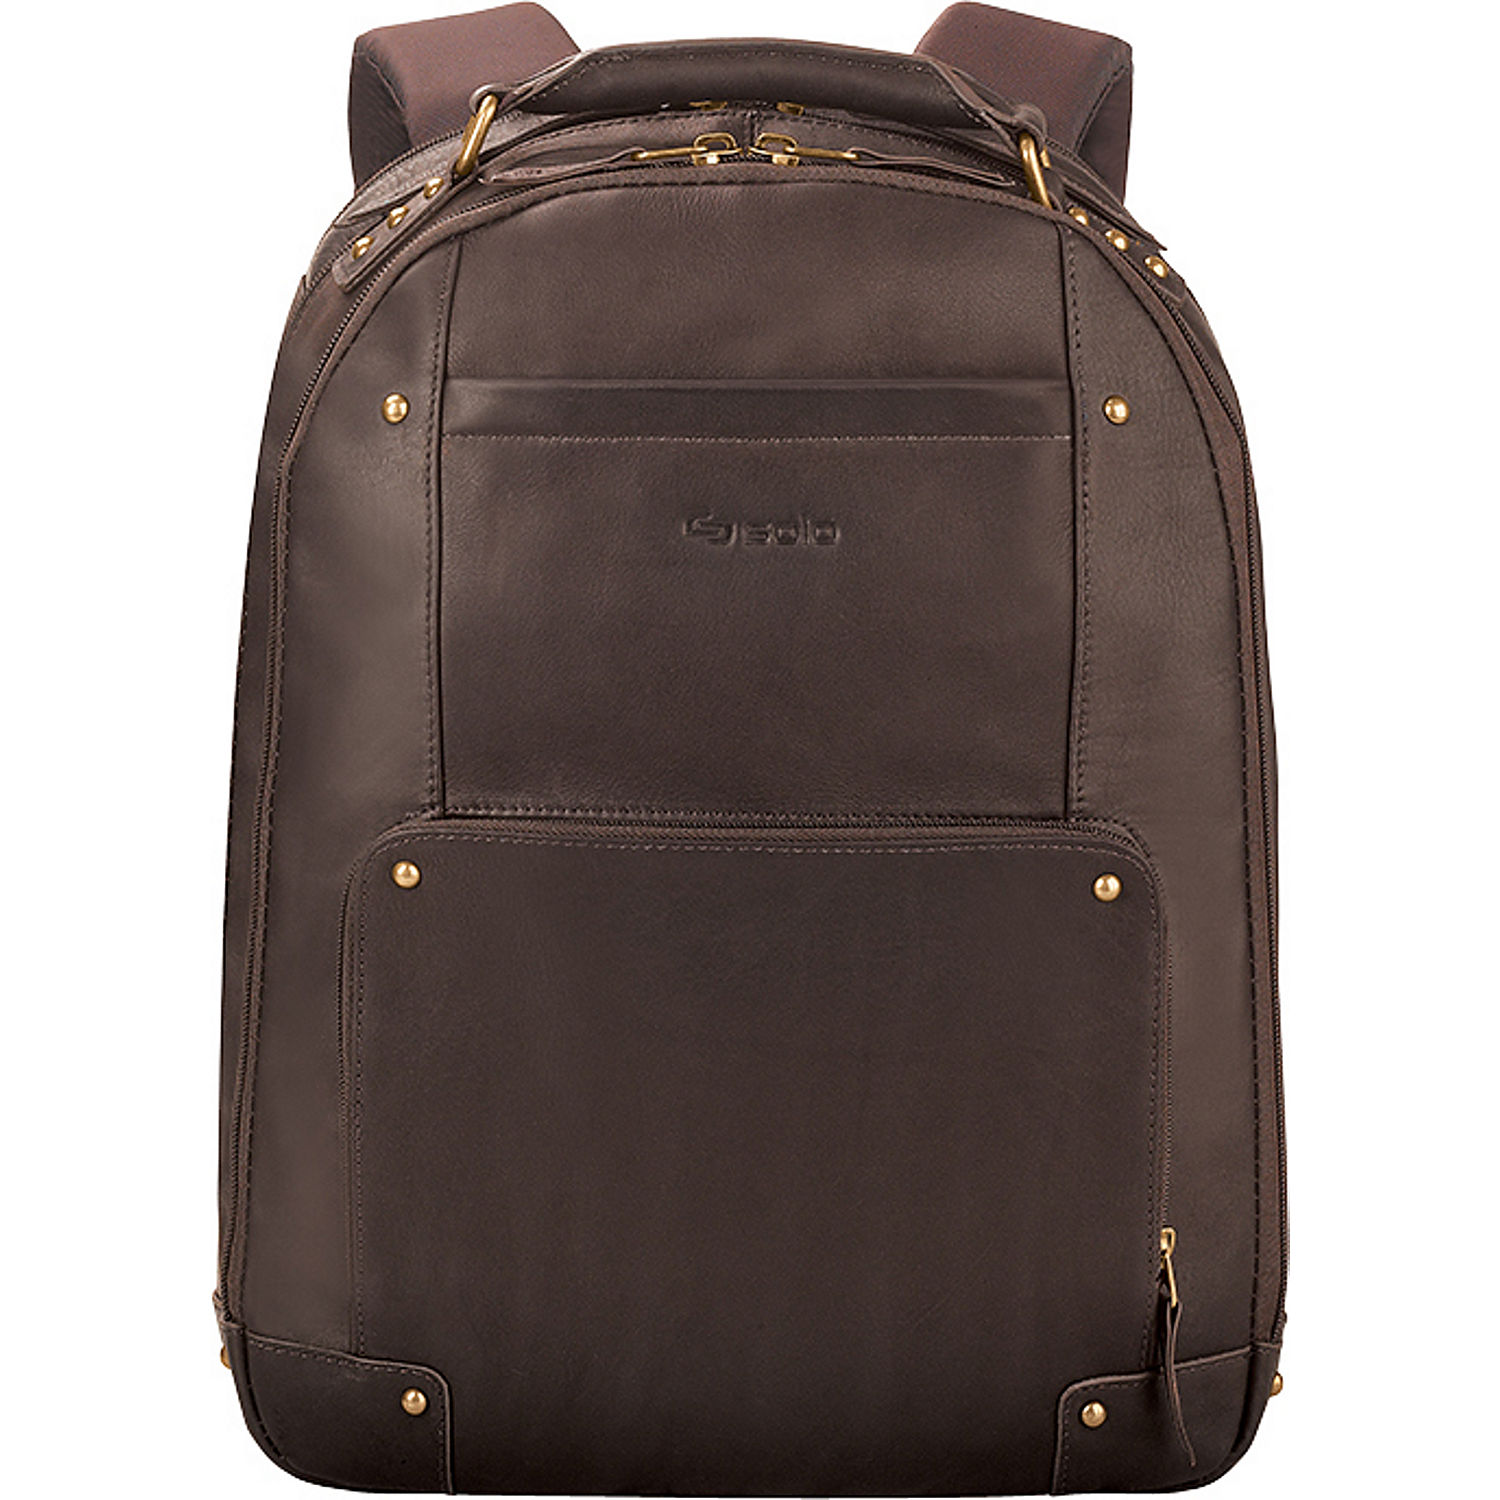 Solo Leather Backpack o5r1T45L